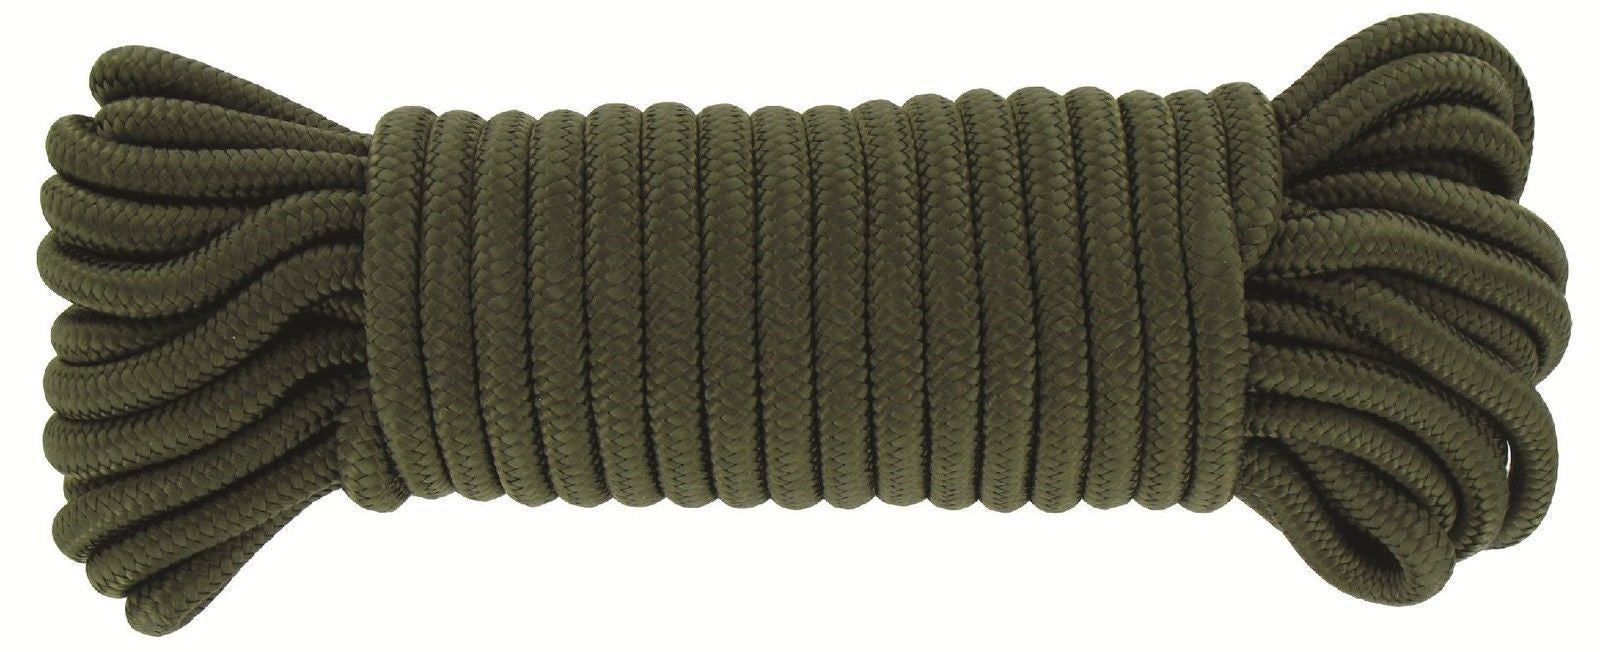 Highlander Utility Rope 9mm 15 Metres - Trailblazer Outdoors, Pickering